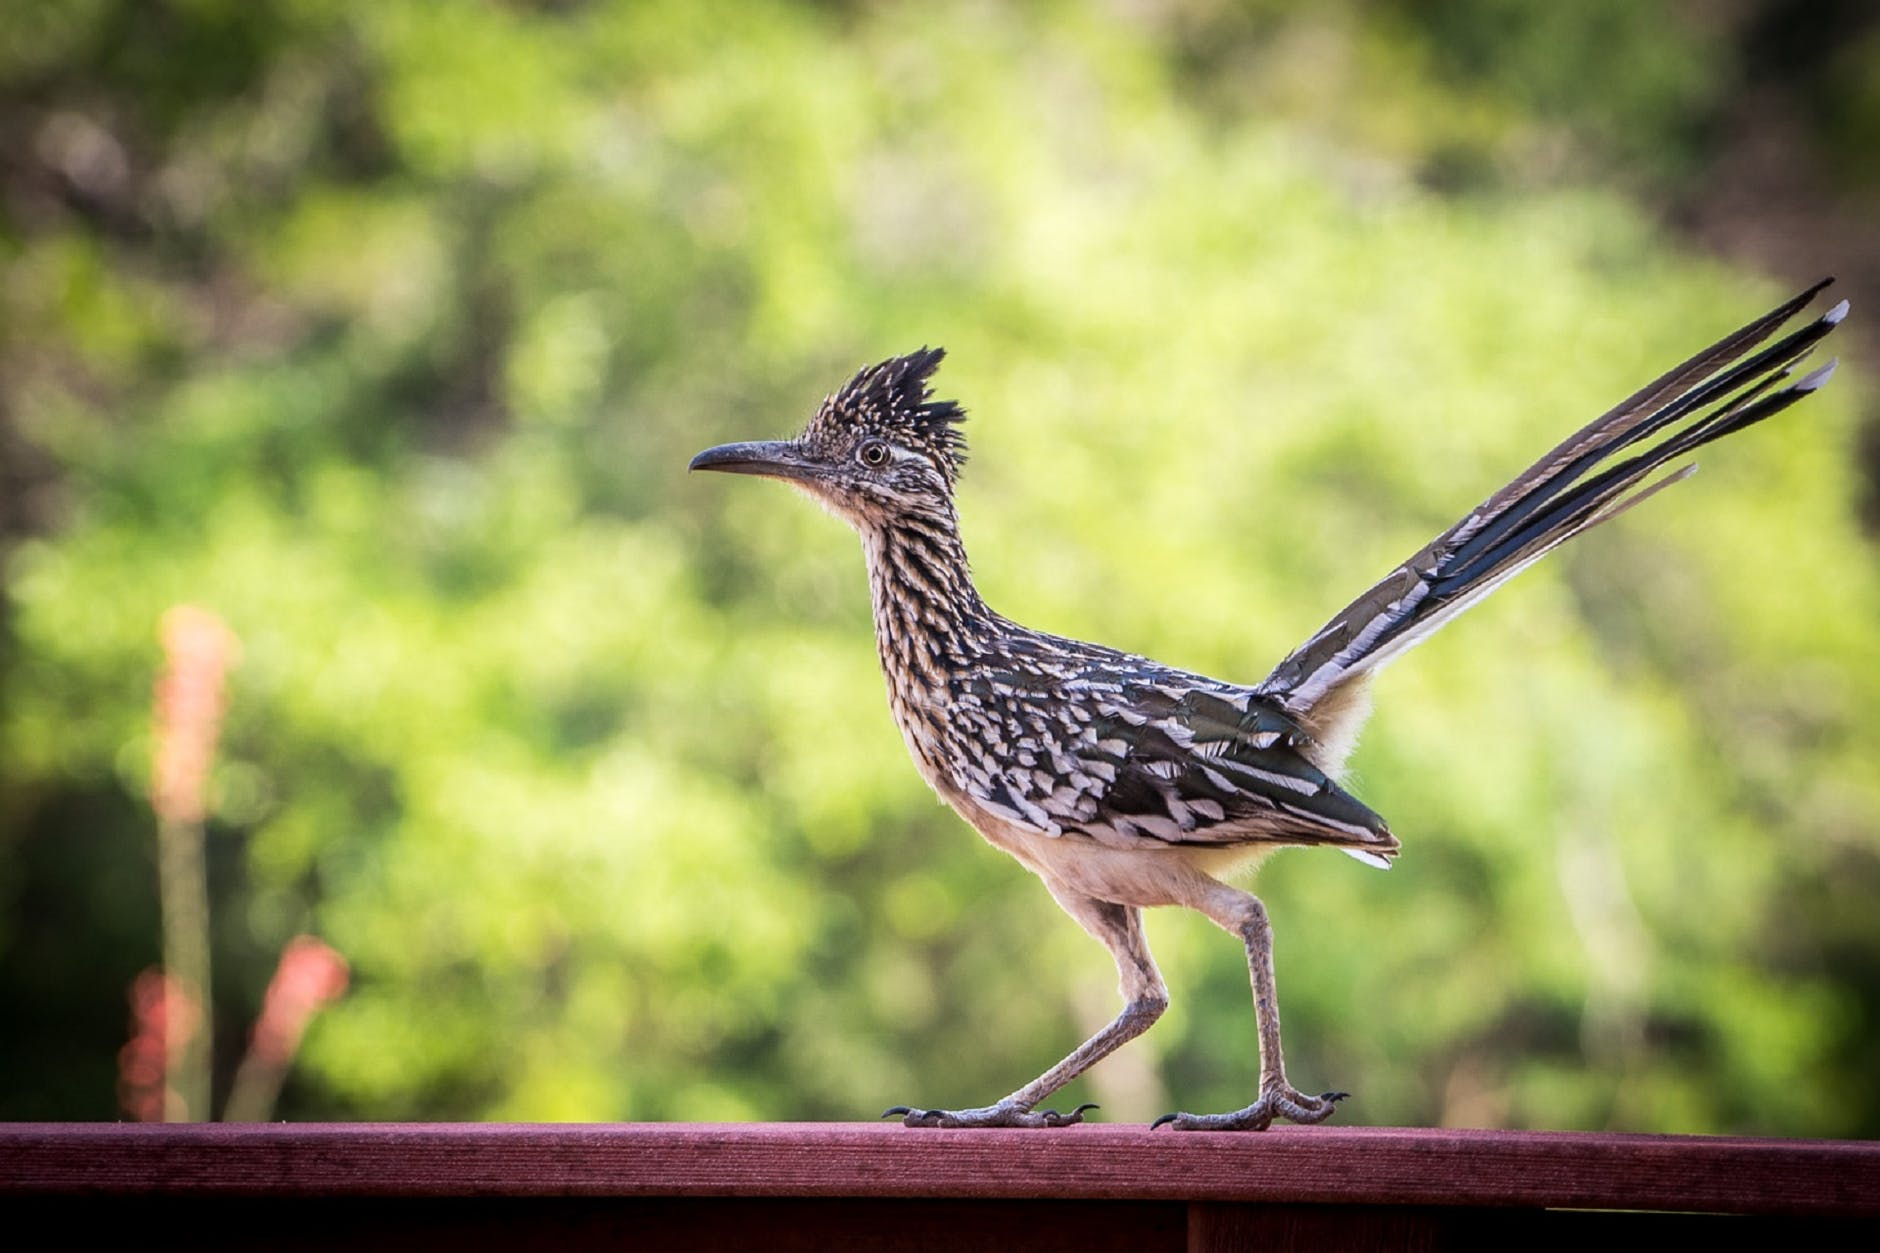 close up photography roadrunner at the top of red surface during daytime